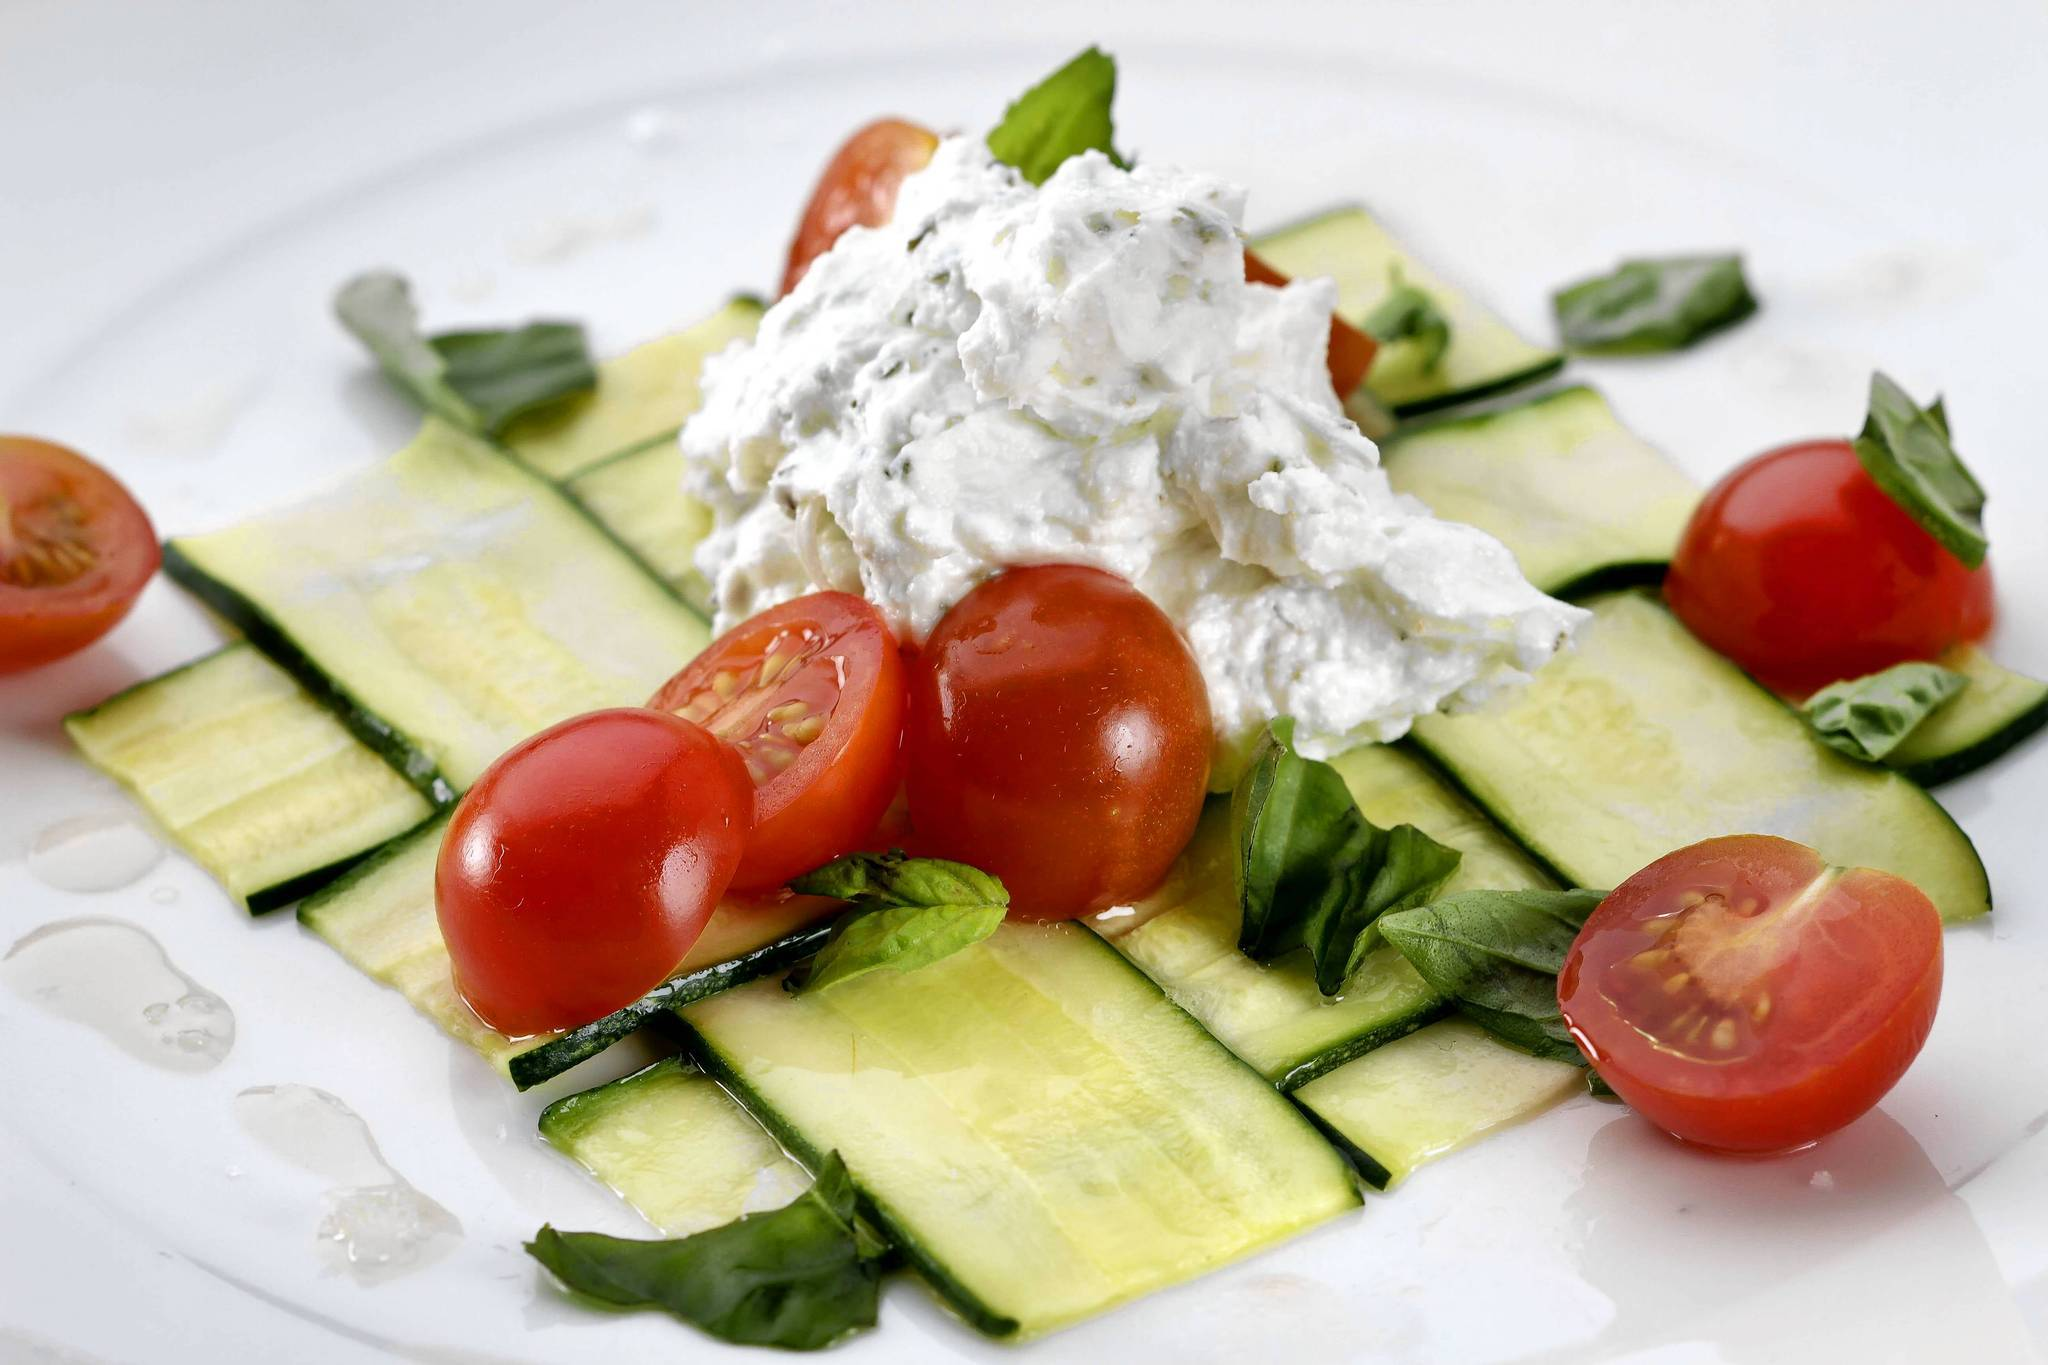 Recipe: Woven zucchini with fresh goat cheese